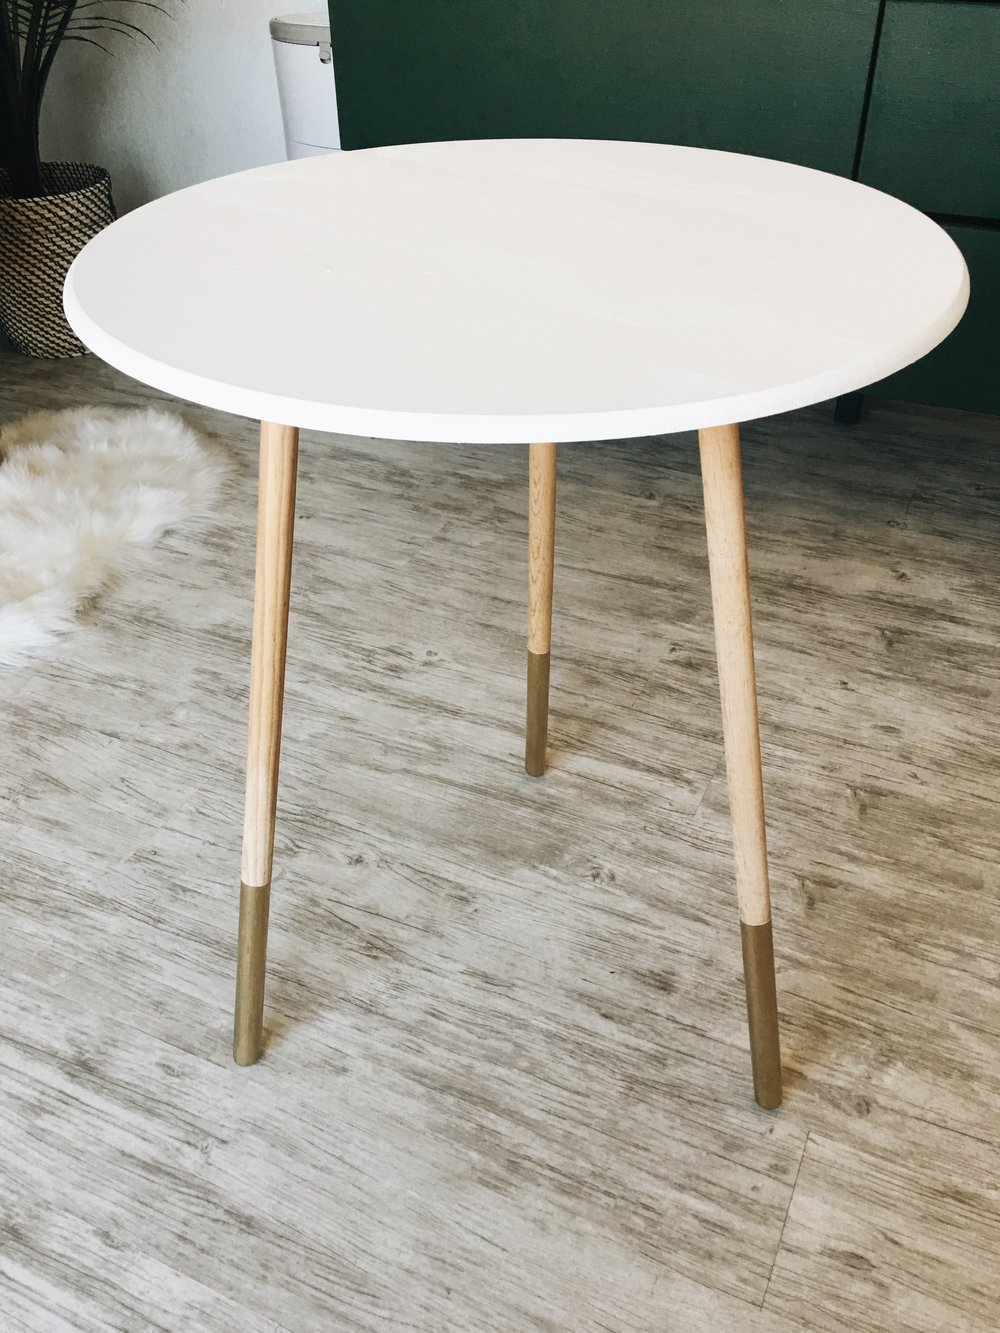 This is one of those old tables from the 80s that your mom probably had with a table cloth covering it and a glass top. We modernized it by painting the top white and adding gold to the legs.